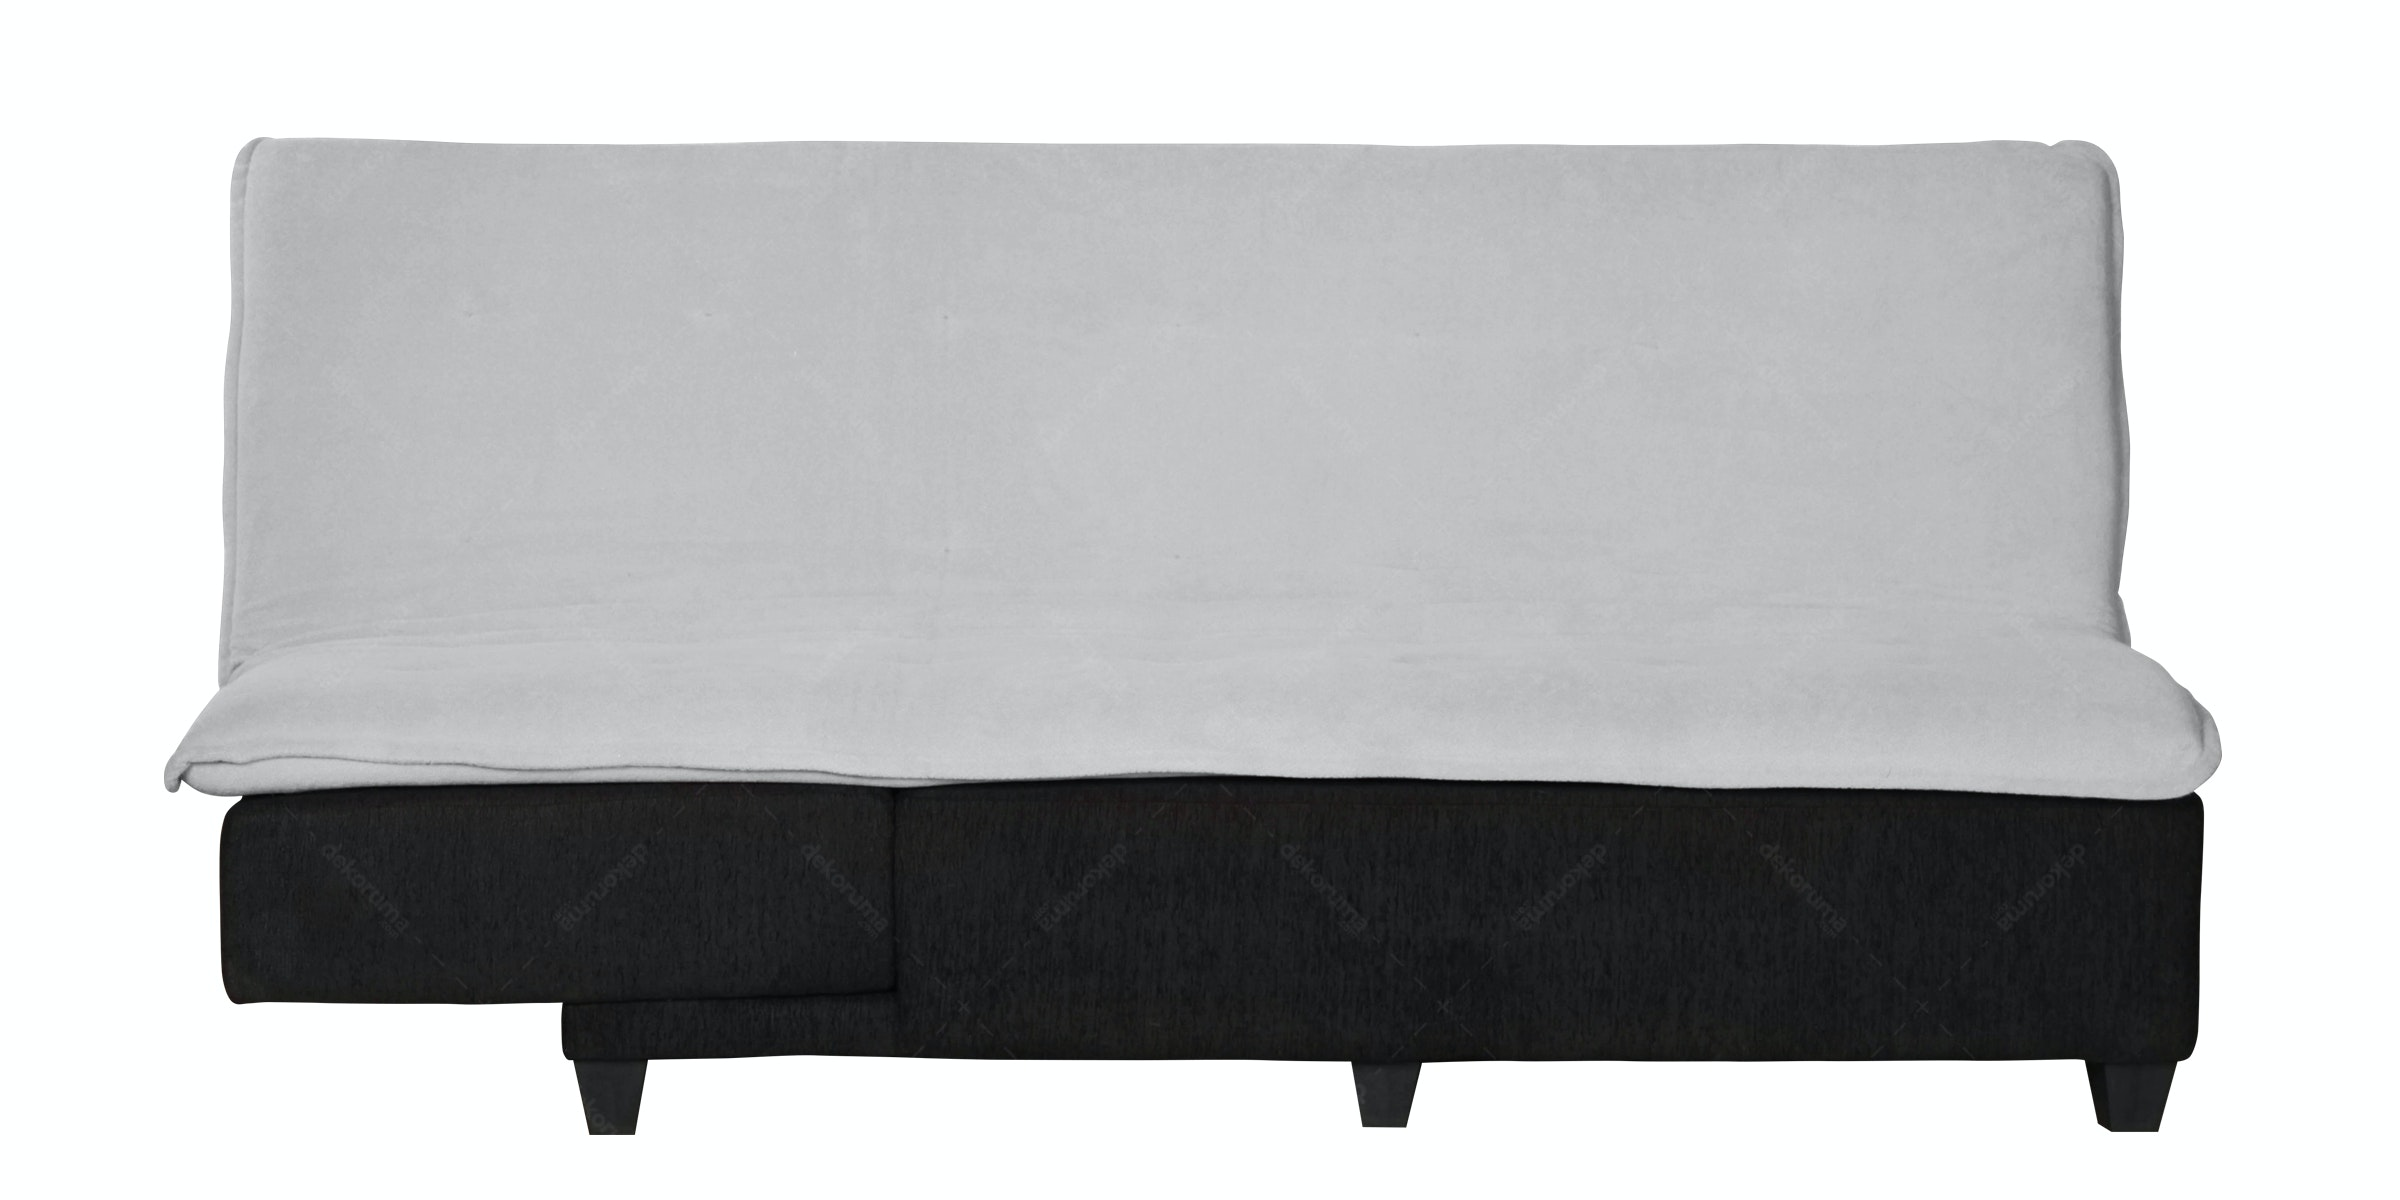 Ornela Sofa Bed Direction Latex Abu-abu